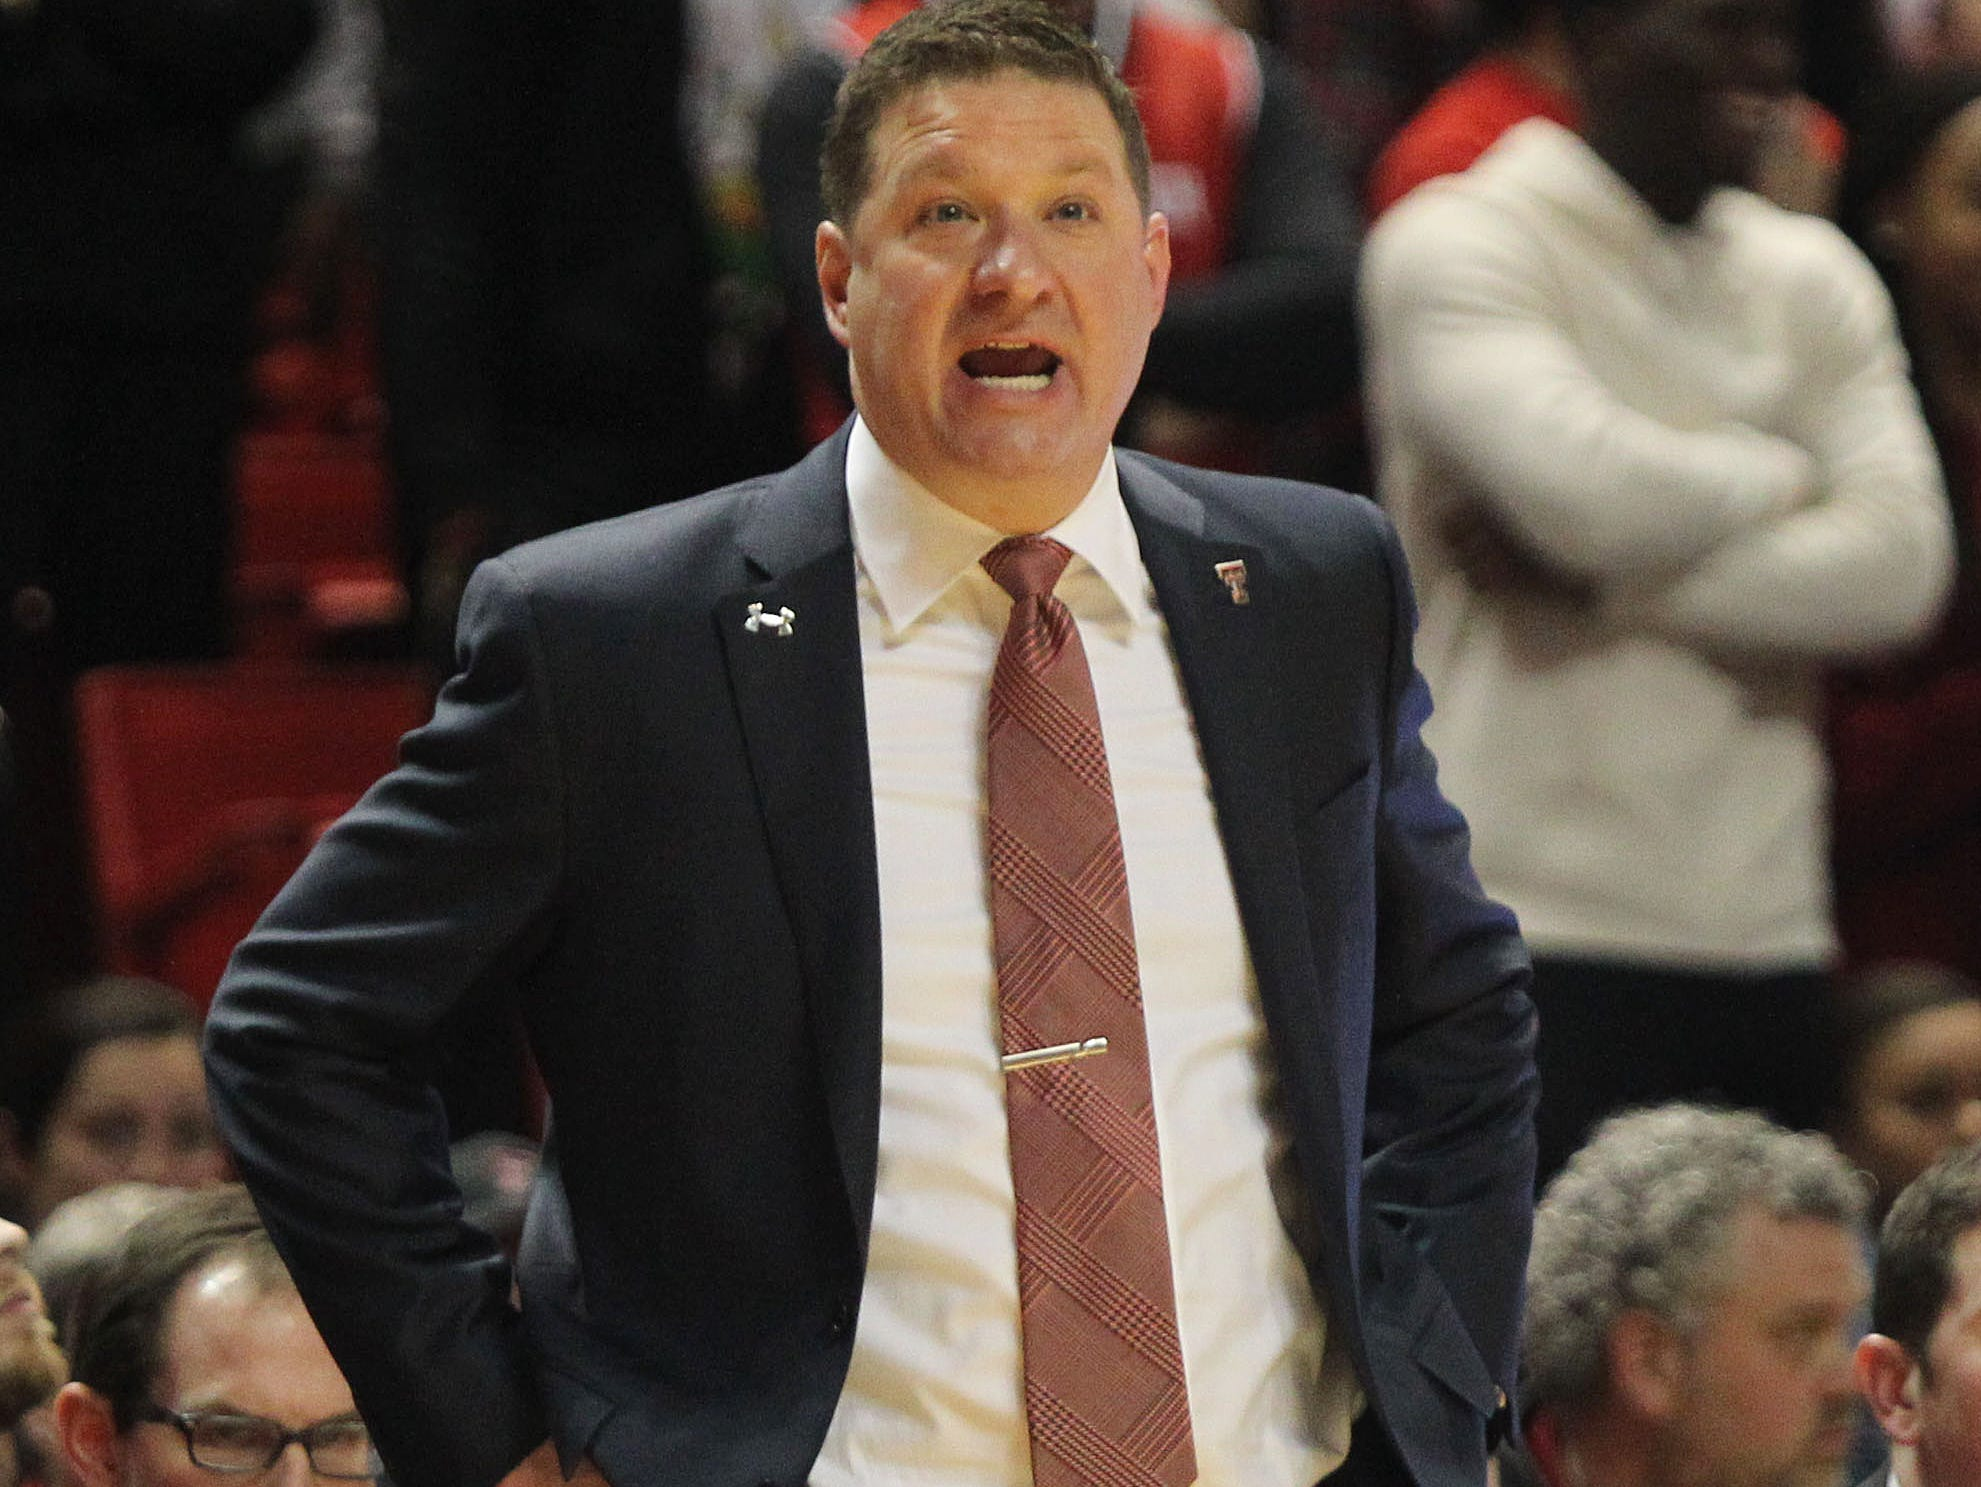 Jan 16, 2019; Lubbock, TX, USA; Texas Tech Red Raiders head coach Chris Beard reacts on the sidelines during the game against the Iowa State Cyclones at United Supermarkets Arena.